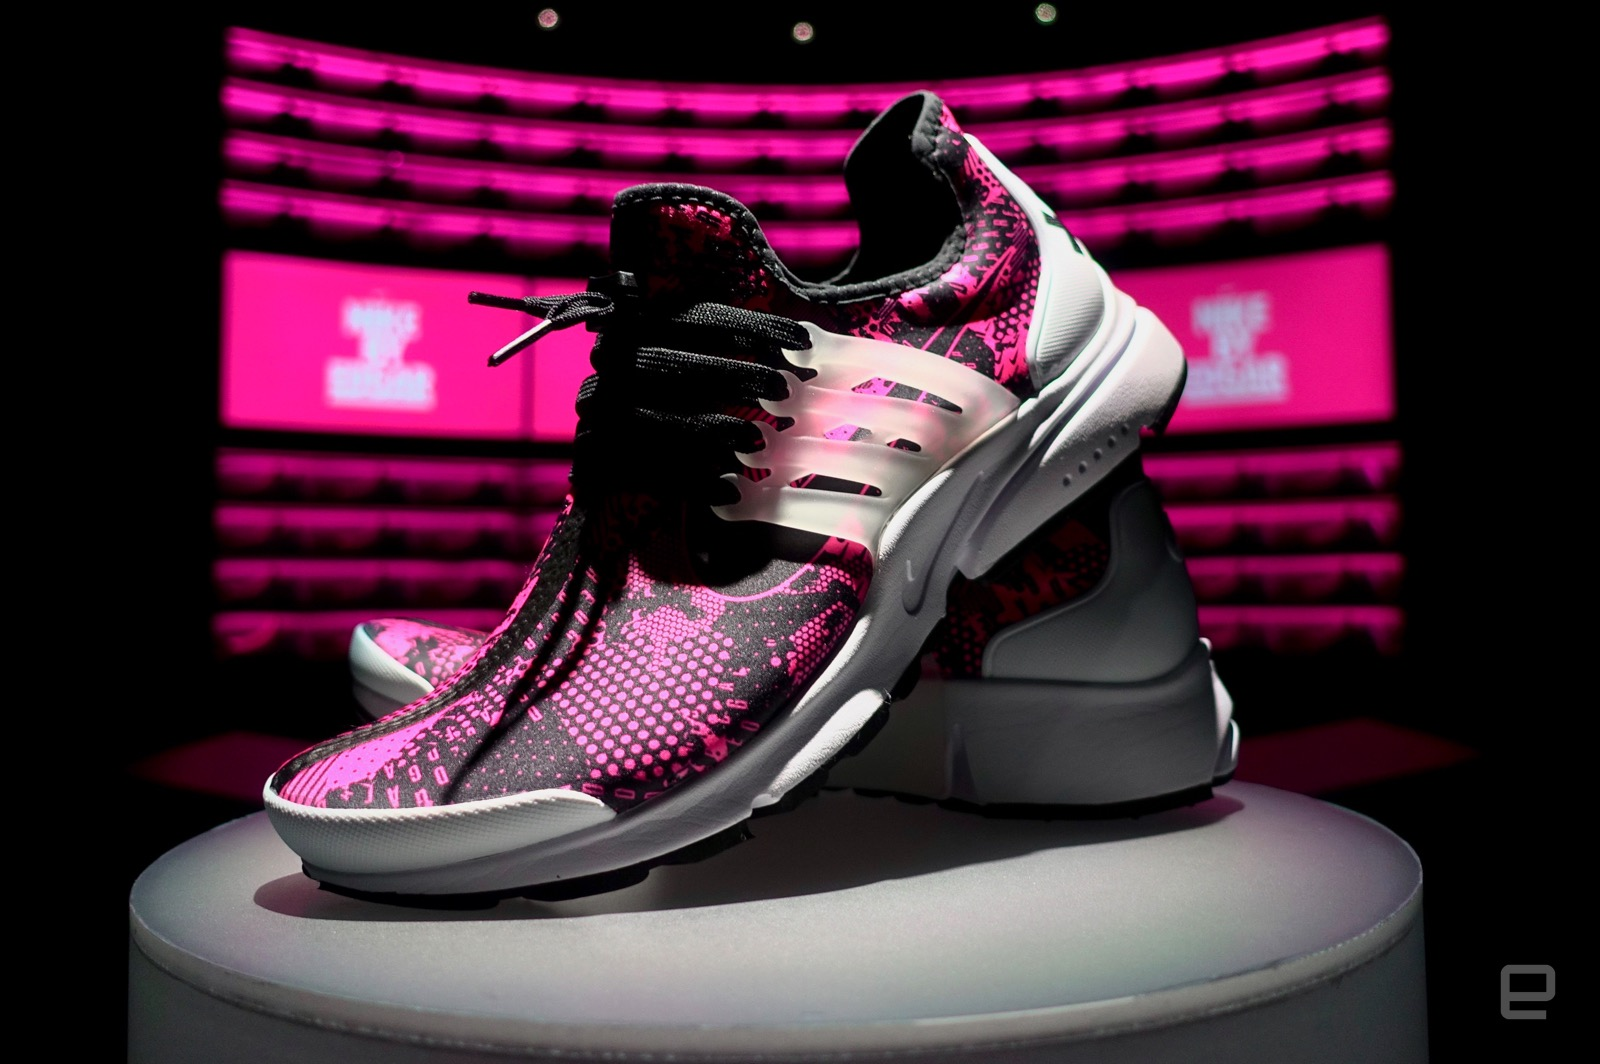 brand new 248ea 04d33 Last week, Nike announced the launch of its Makers  Experience, an  invite-only, limited-time event where people can design a pair of shoes and  have them ...